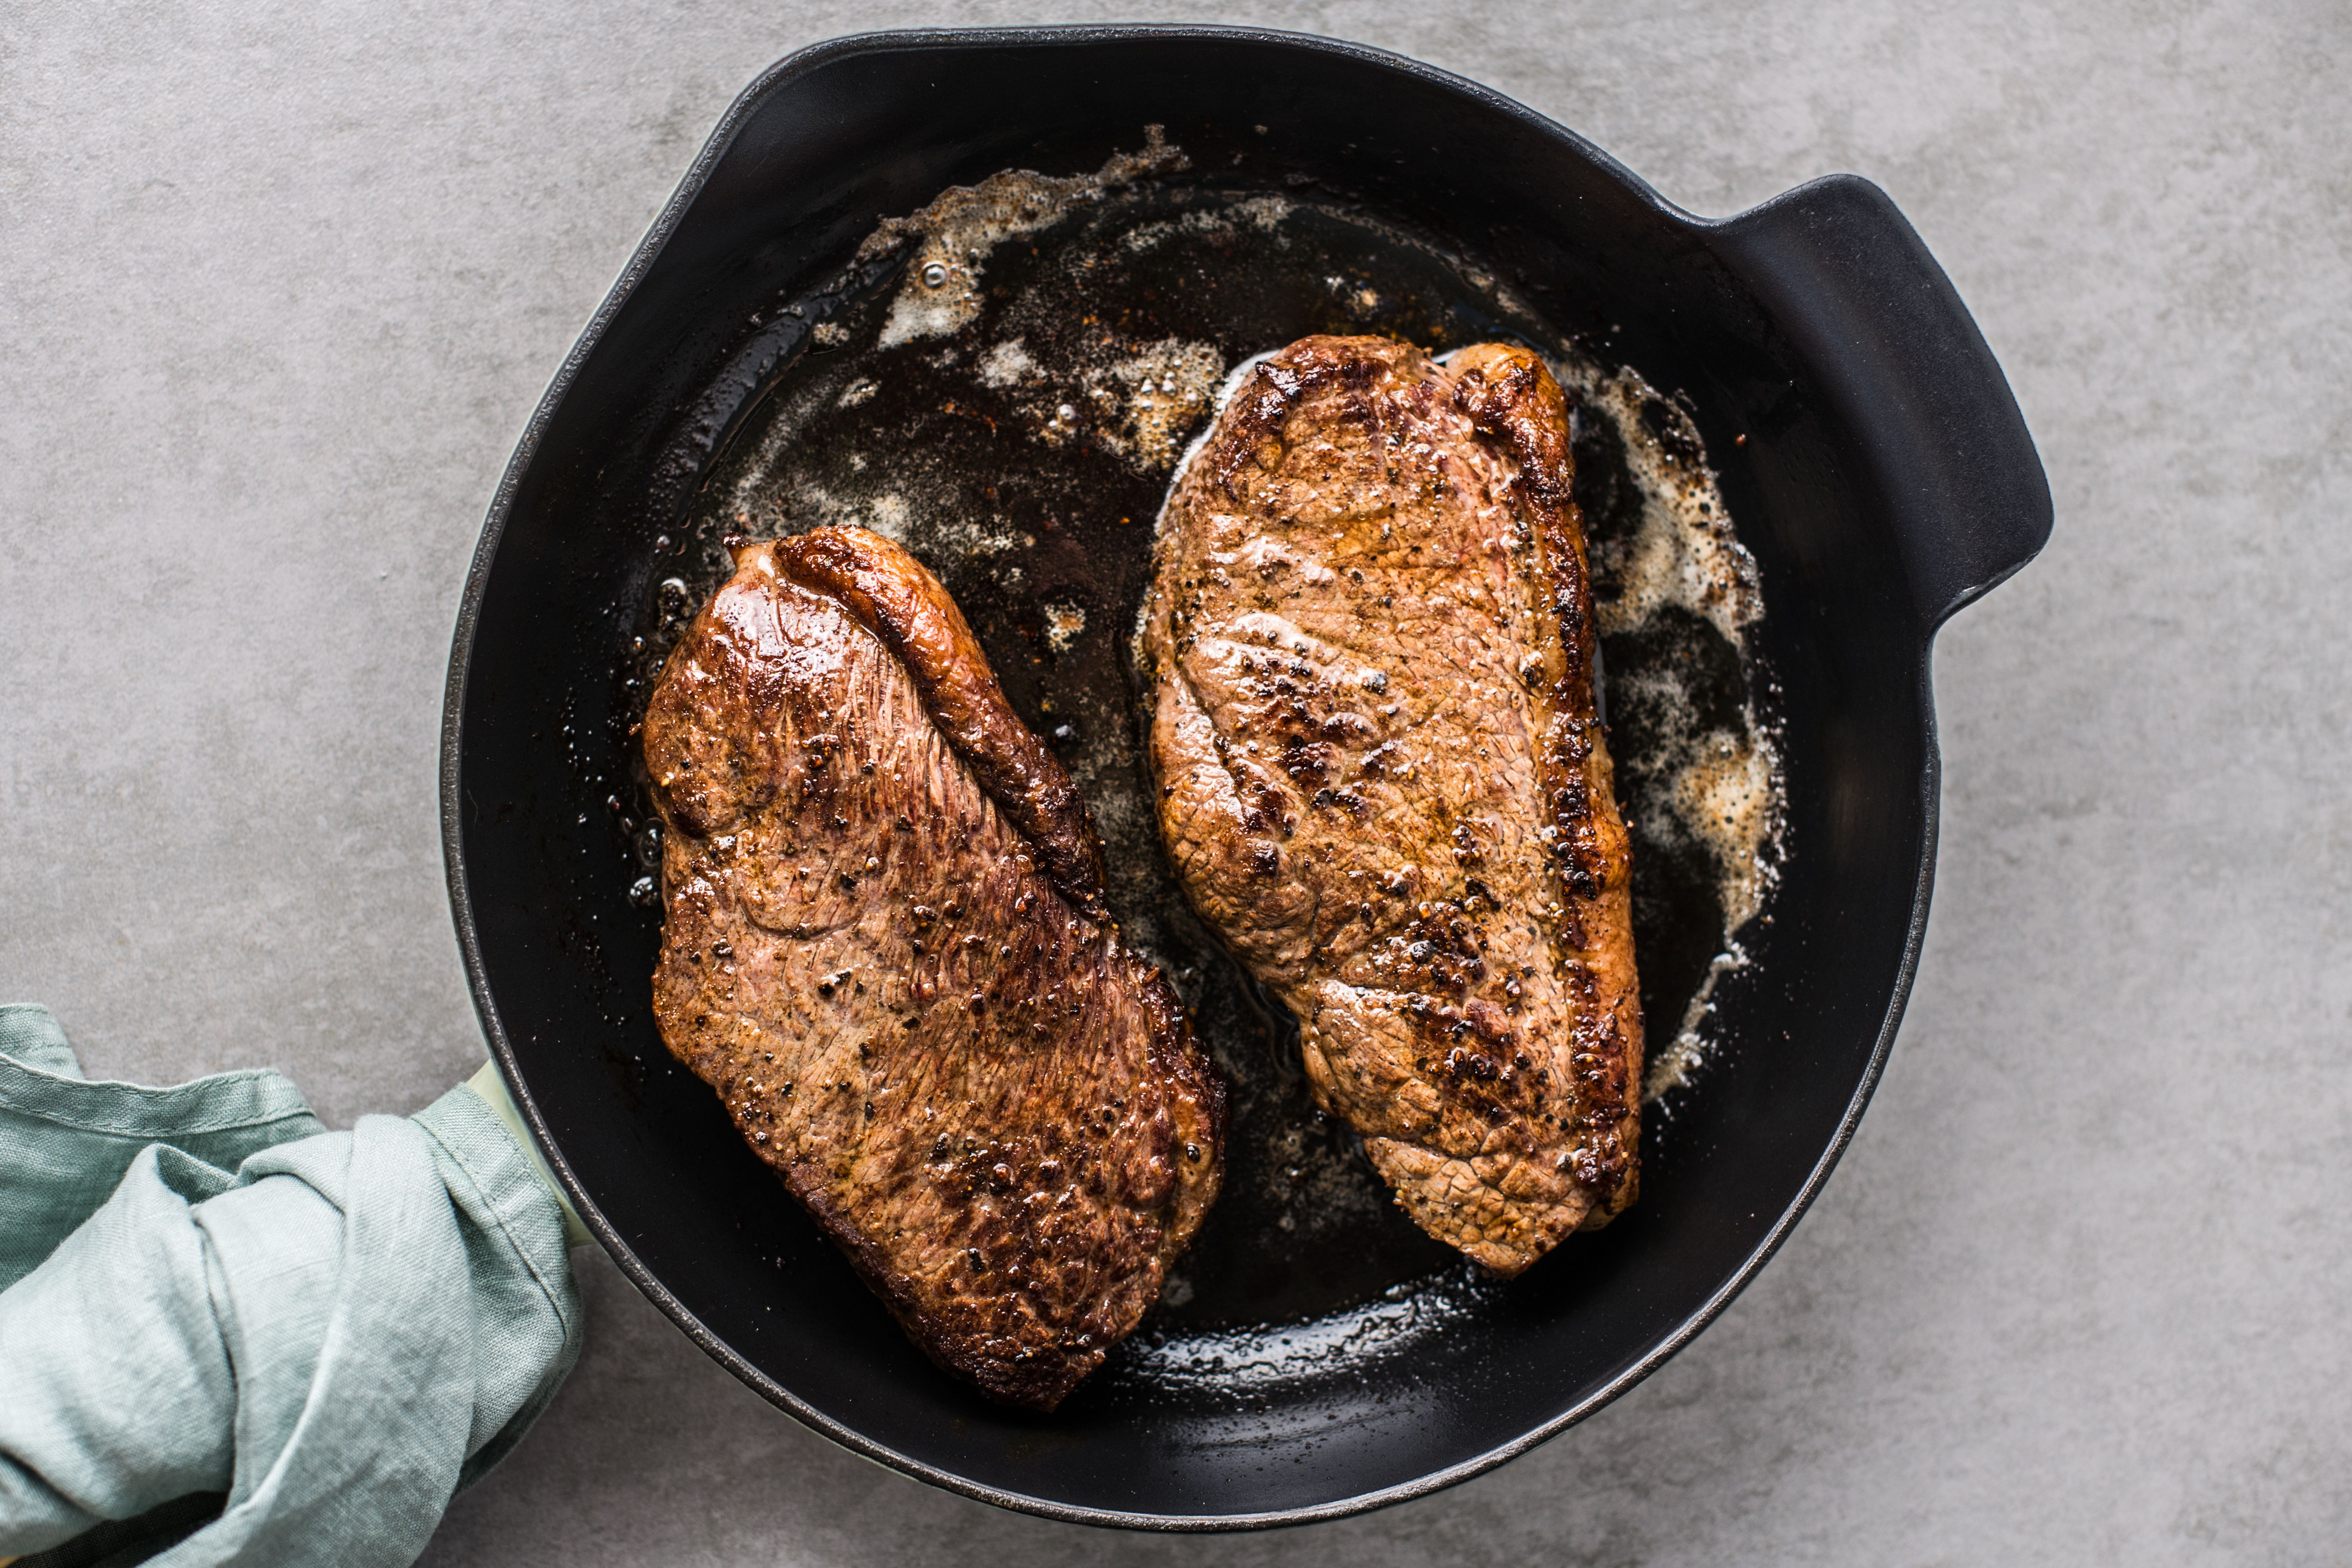 Cooked steaks in a pan